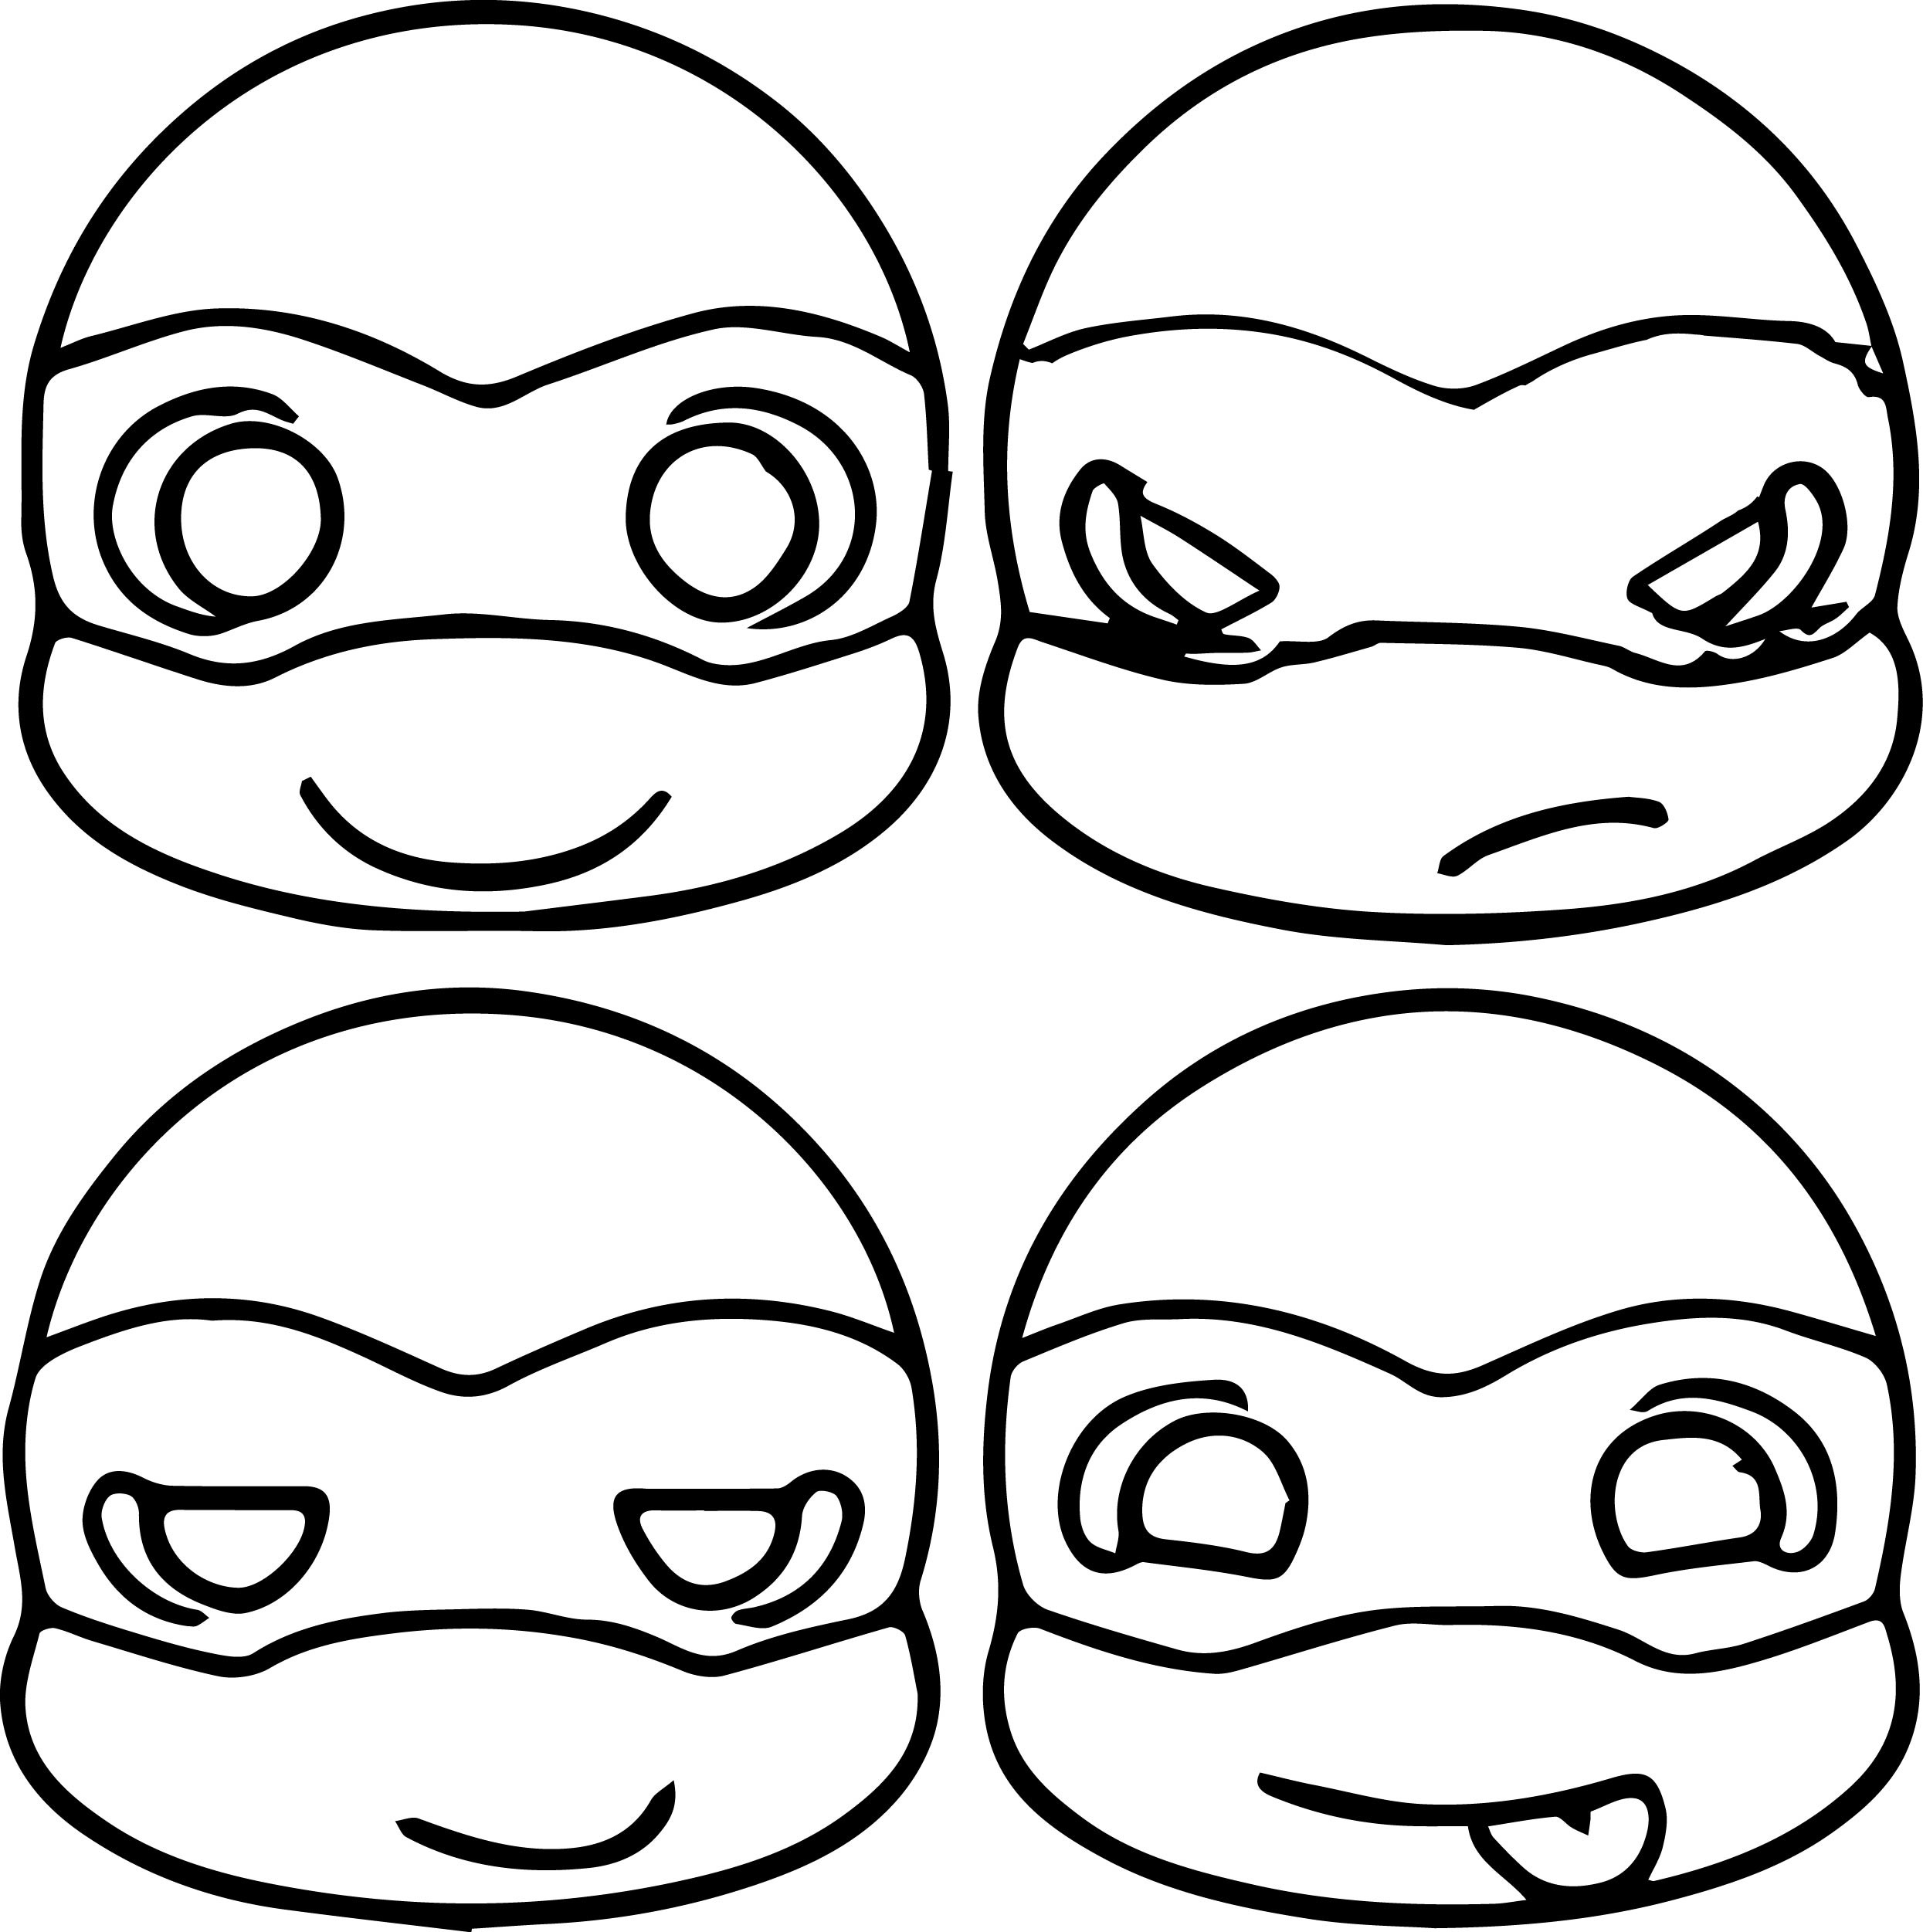 2490x2502 Teenage Mutant Ninja Turtles Coloring Pages Printable Simple Ninja